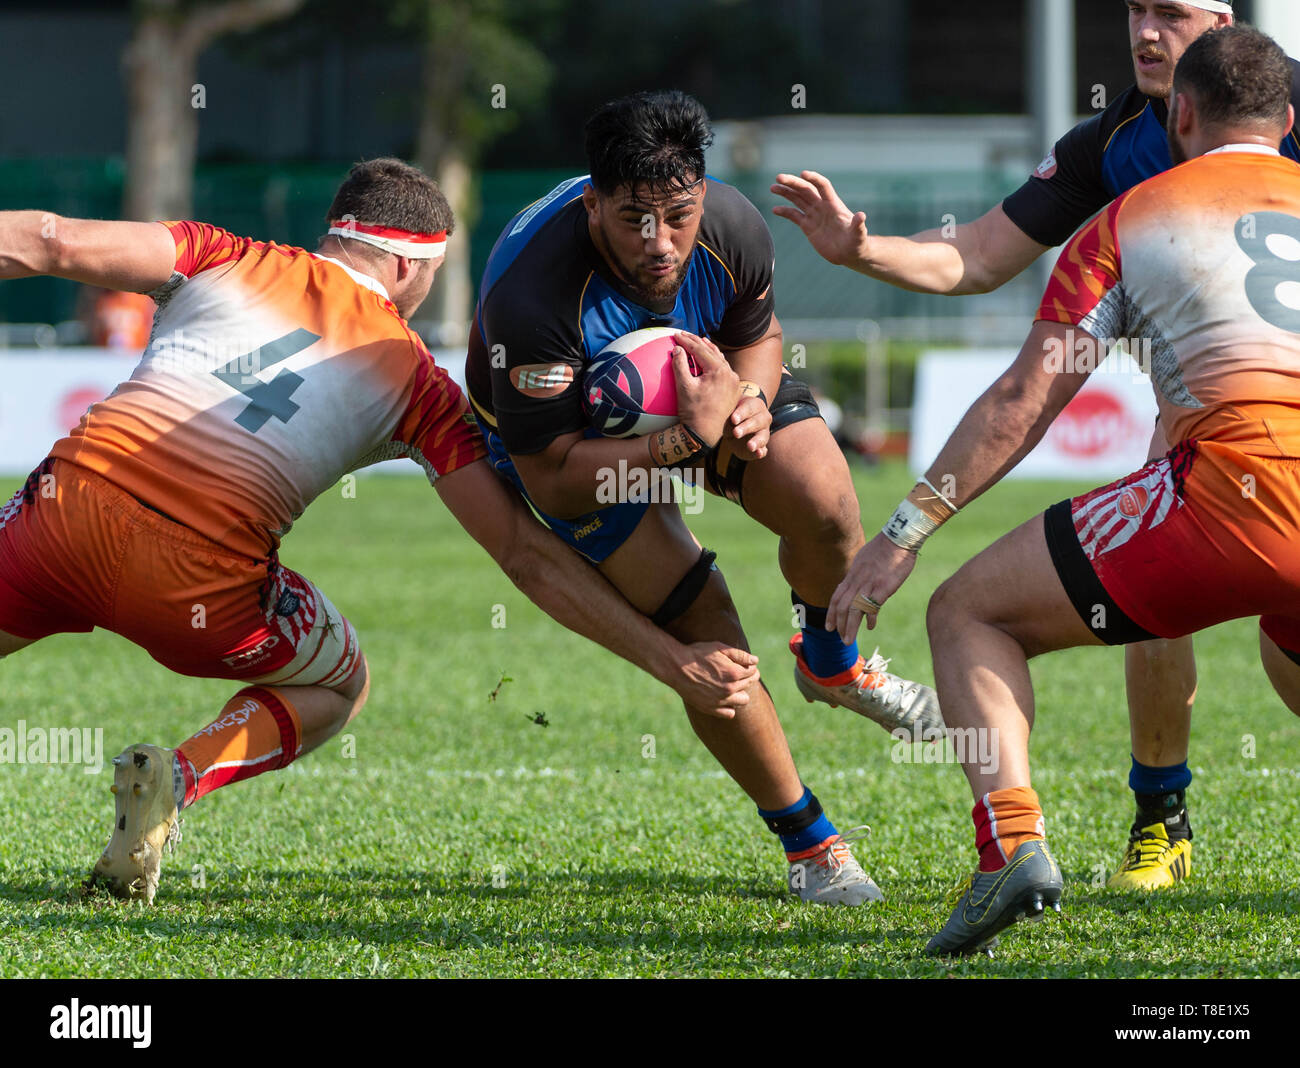 Hong Kong, China. 12th May, 2019. Henry STOWERS in action.Western Force vs South China Tigers Global Rapid Rugby. The Western Force make their inaugural appearance in Hong Kong facing off against the FWD South China Tigers in the finale of the Global Rapid Rugby Asian Showcase Series Credit: Jayne Russell/ZUMA Wire/Alamy Live News Stock Photo